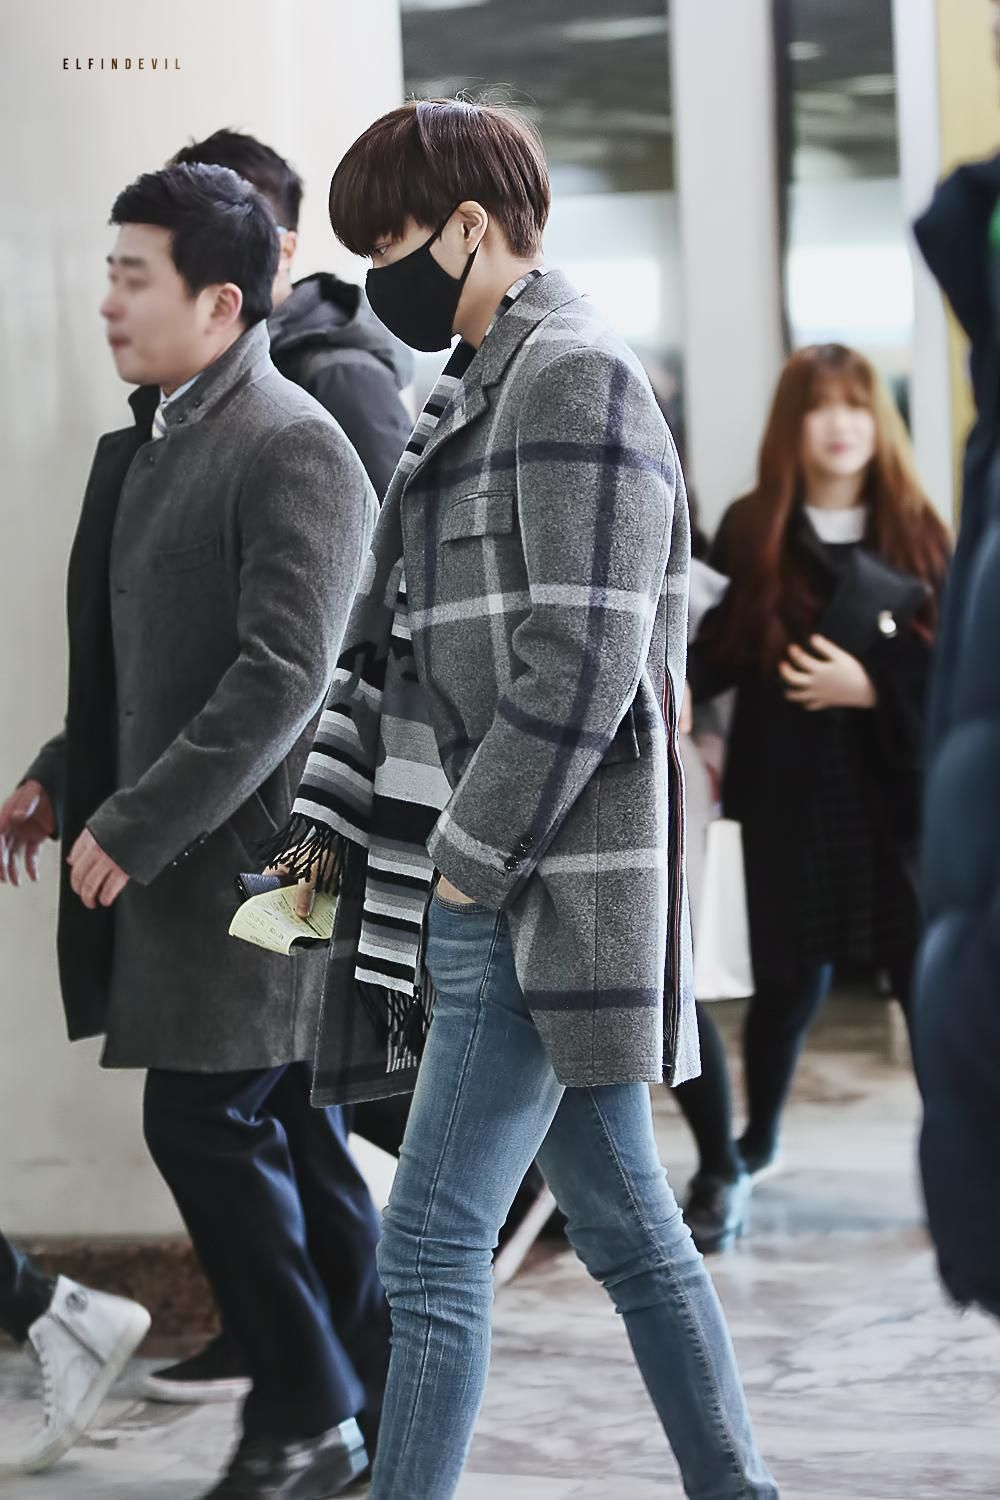 150131 Kai at Gimpo Airport ©elfindevil …